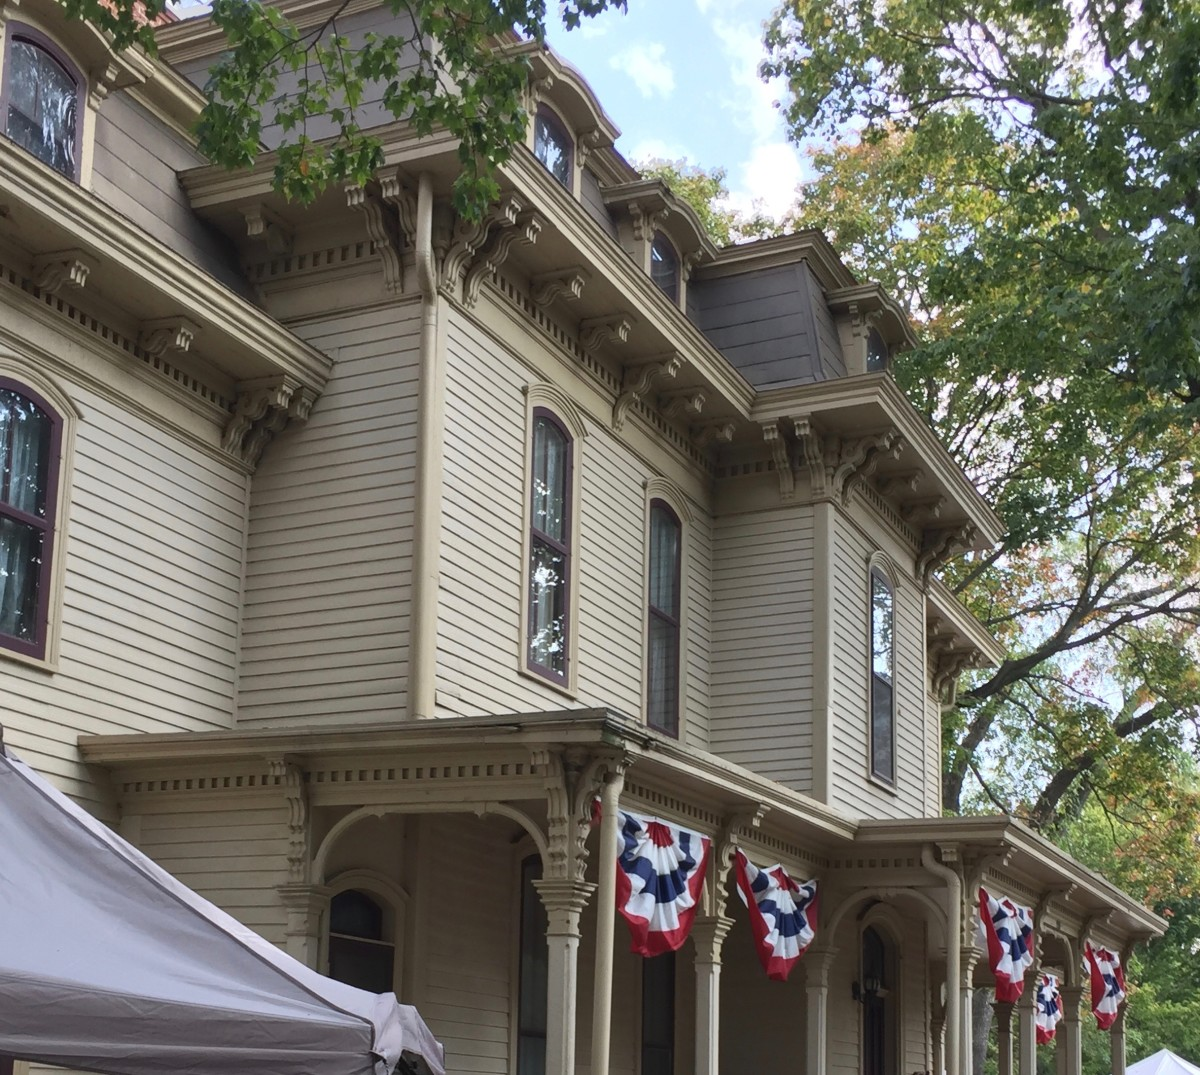 The C.H. Moore Homestead and Apple 'n Pork Festival in Clinton, Illinois